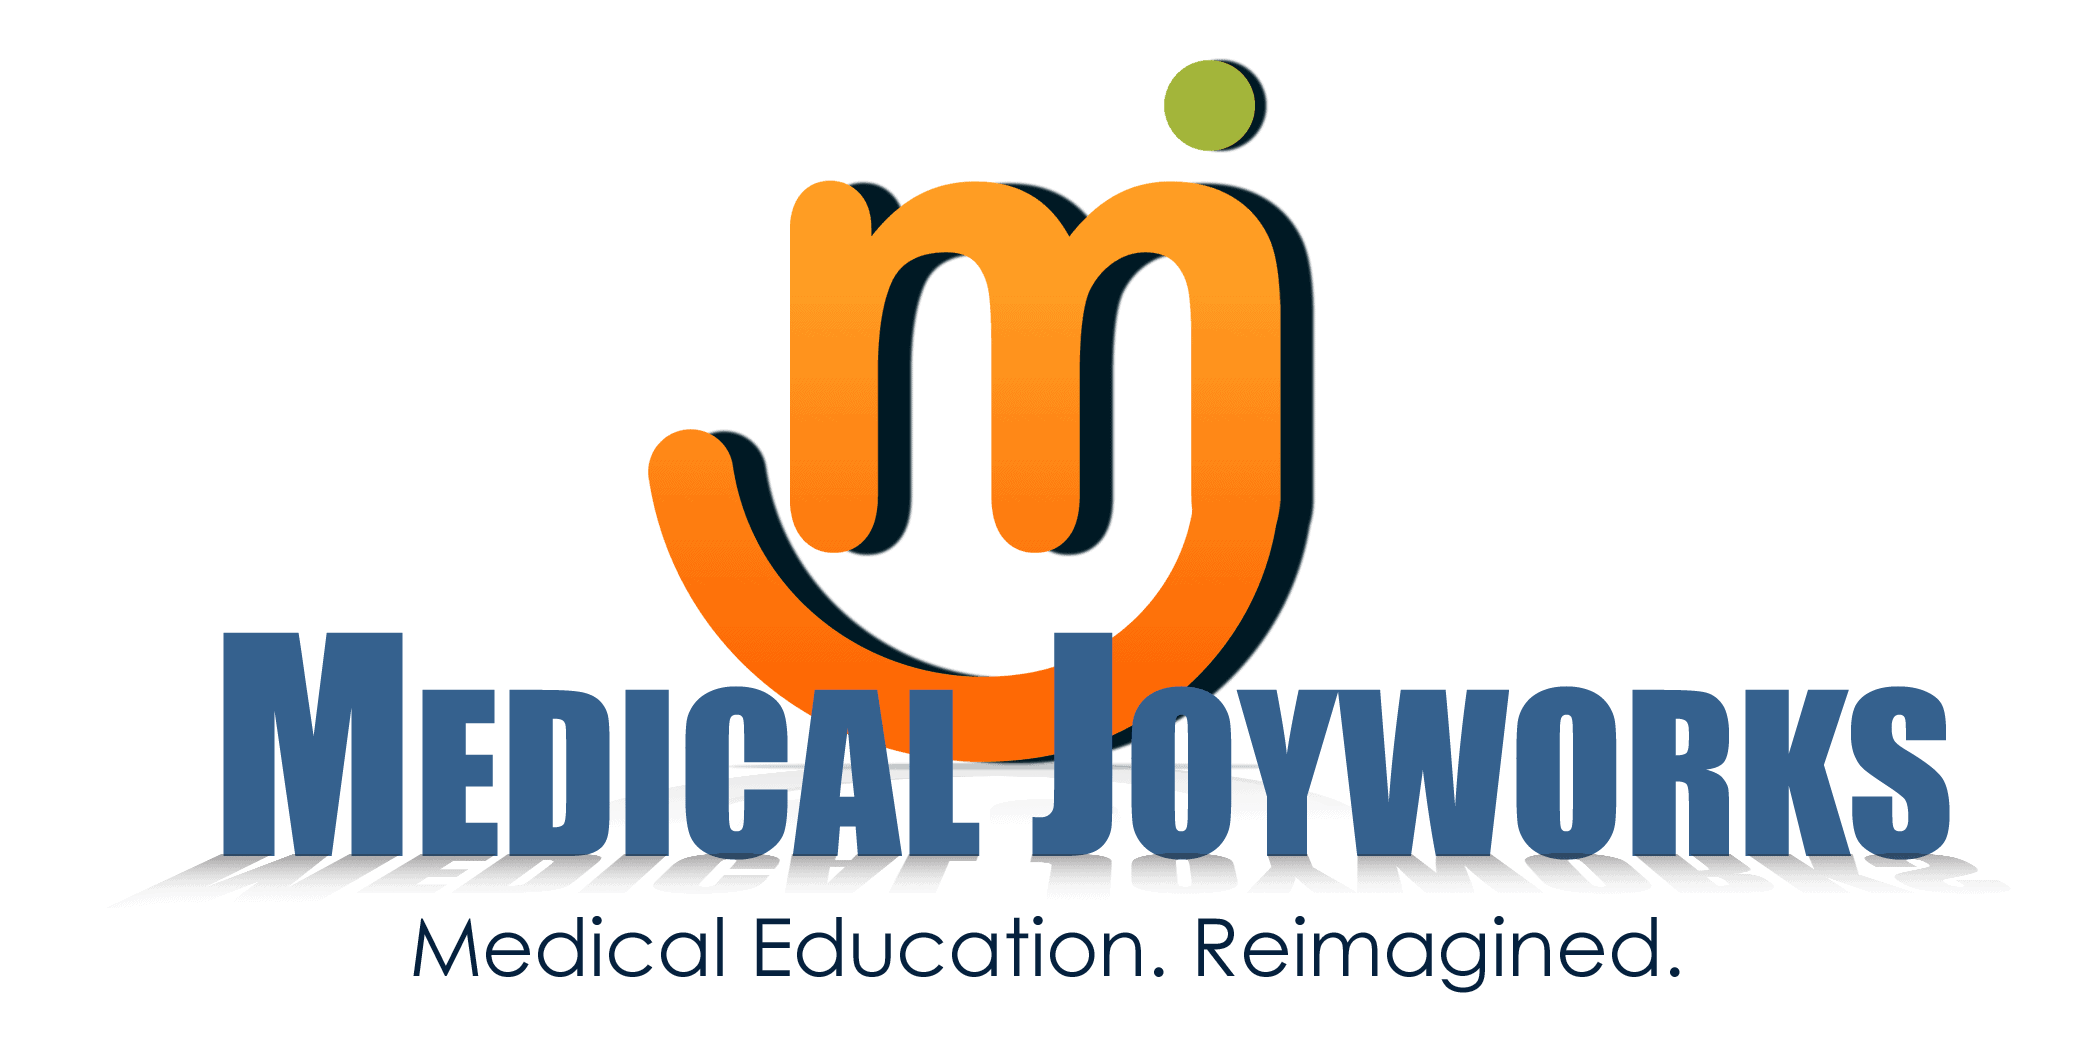 Medical Joyworks medical app logo